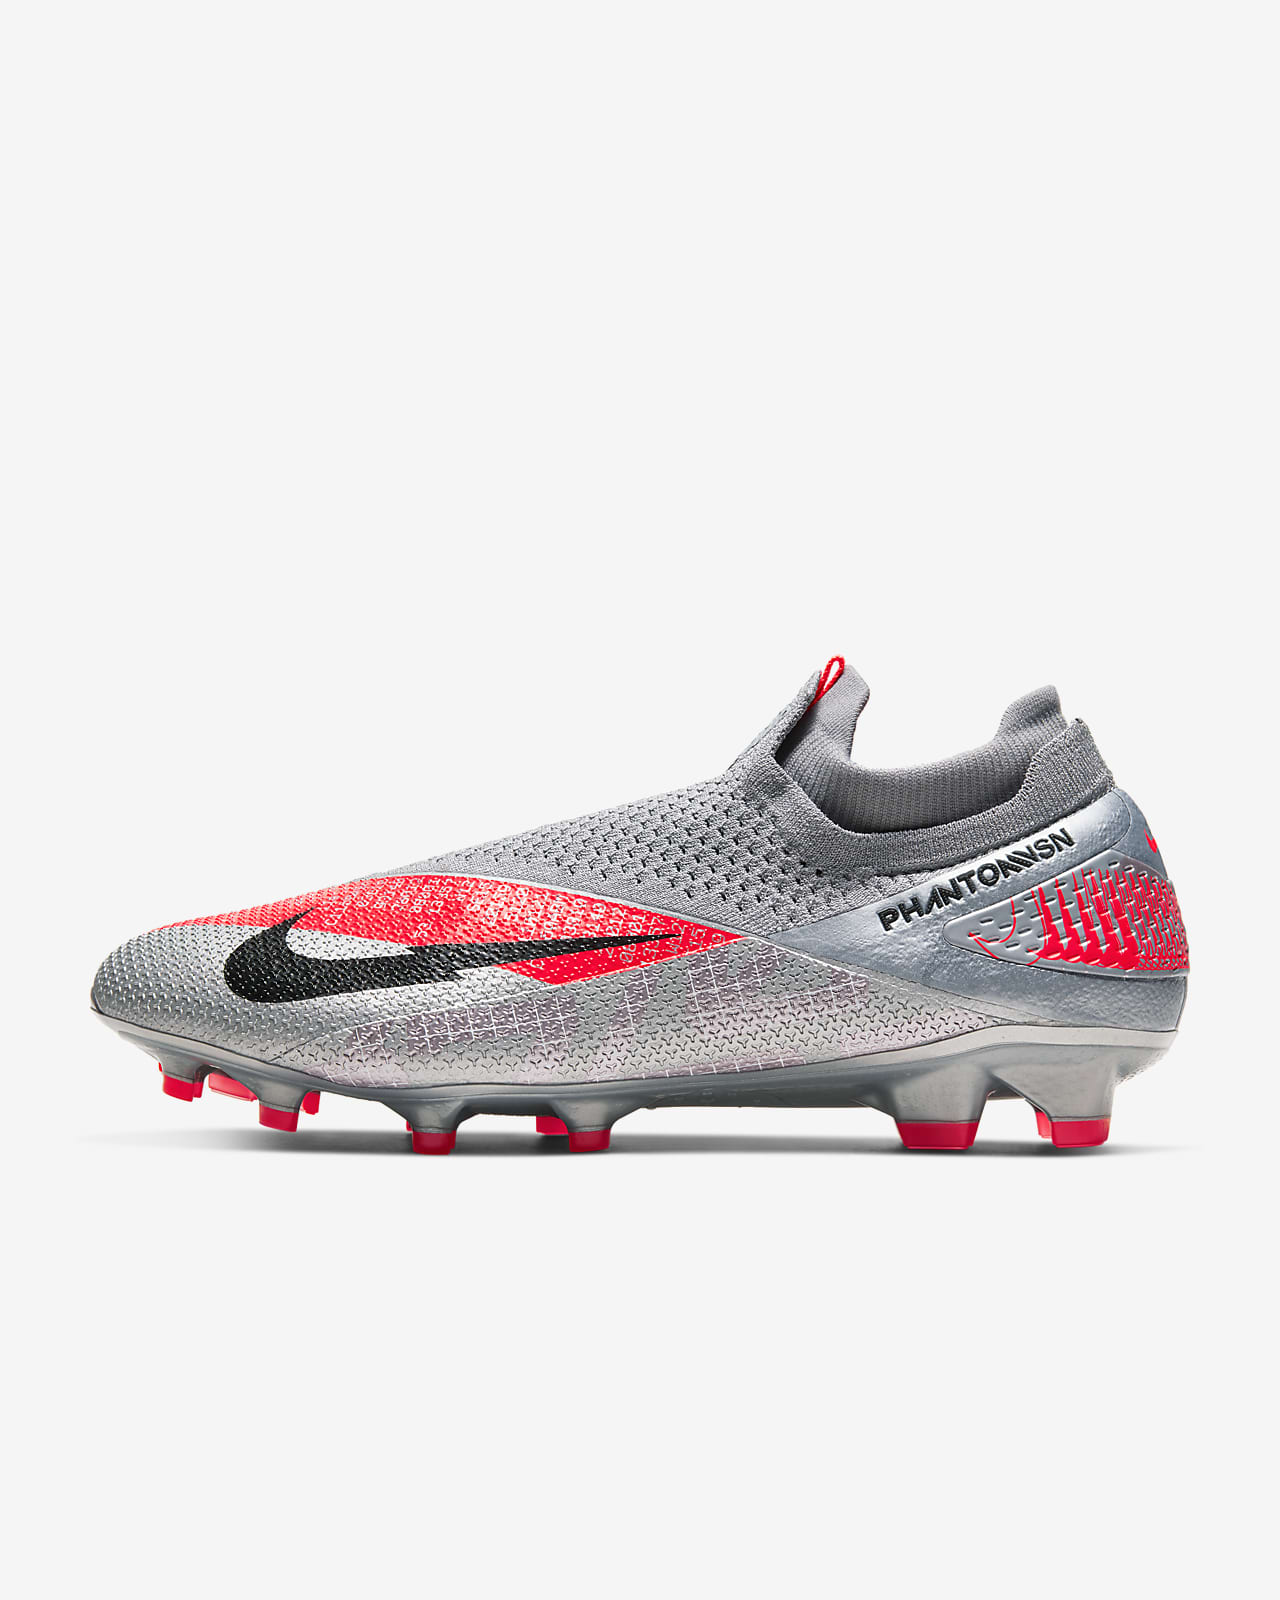 Nike Phantom Vision 2 Elite Dynamic Fit FG Firm-Ground Football Boot